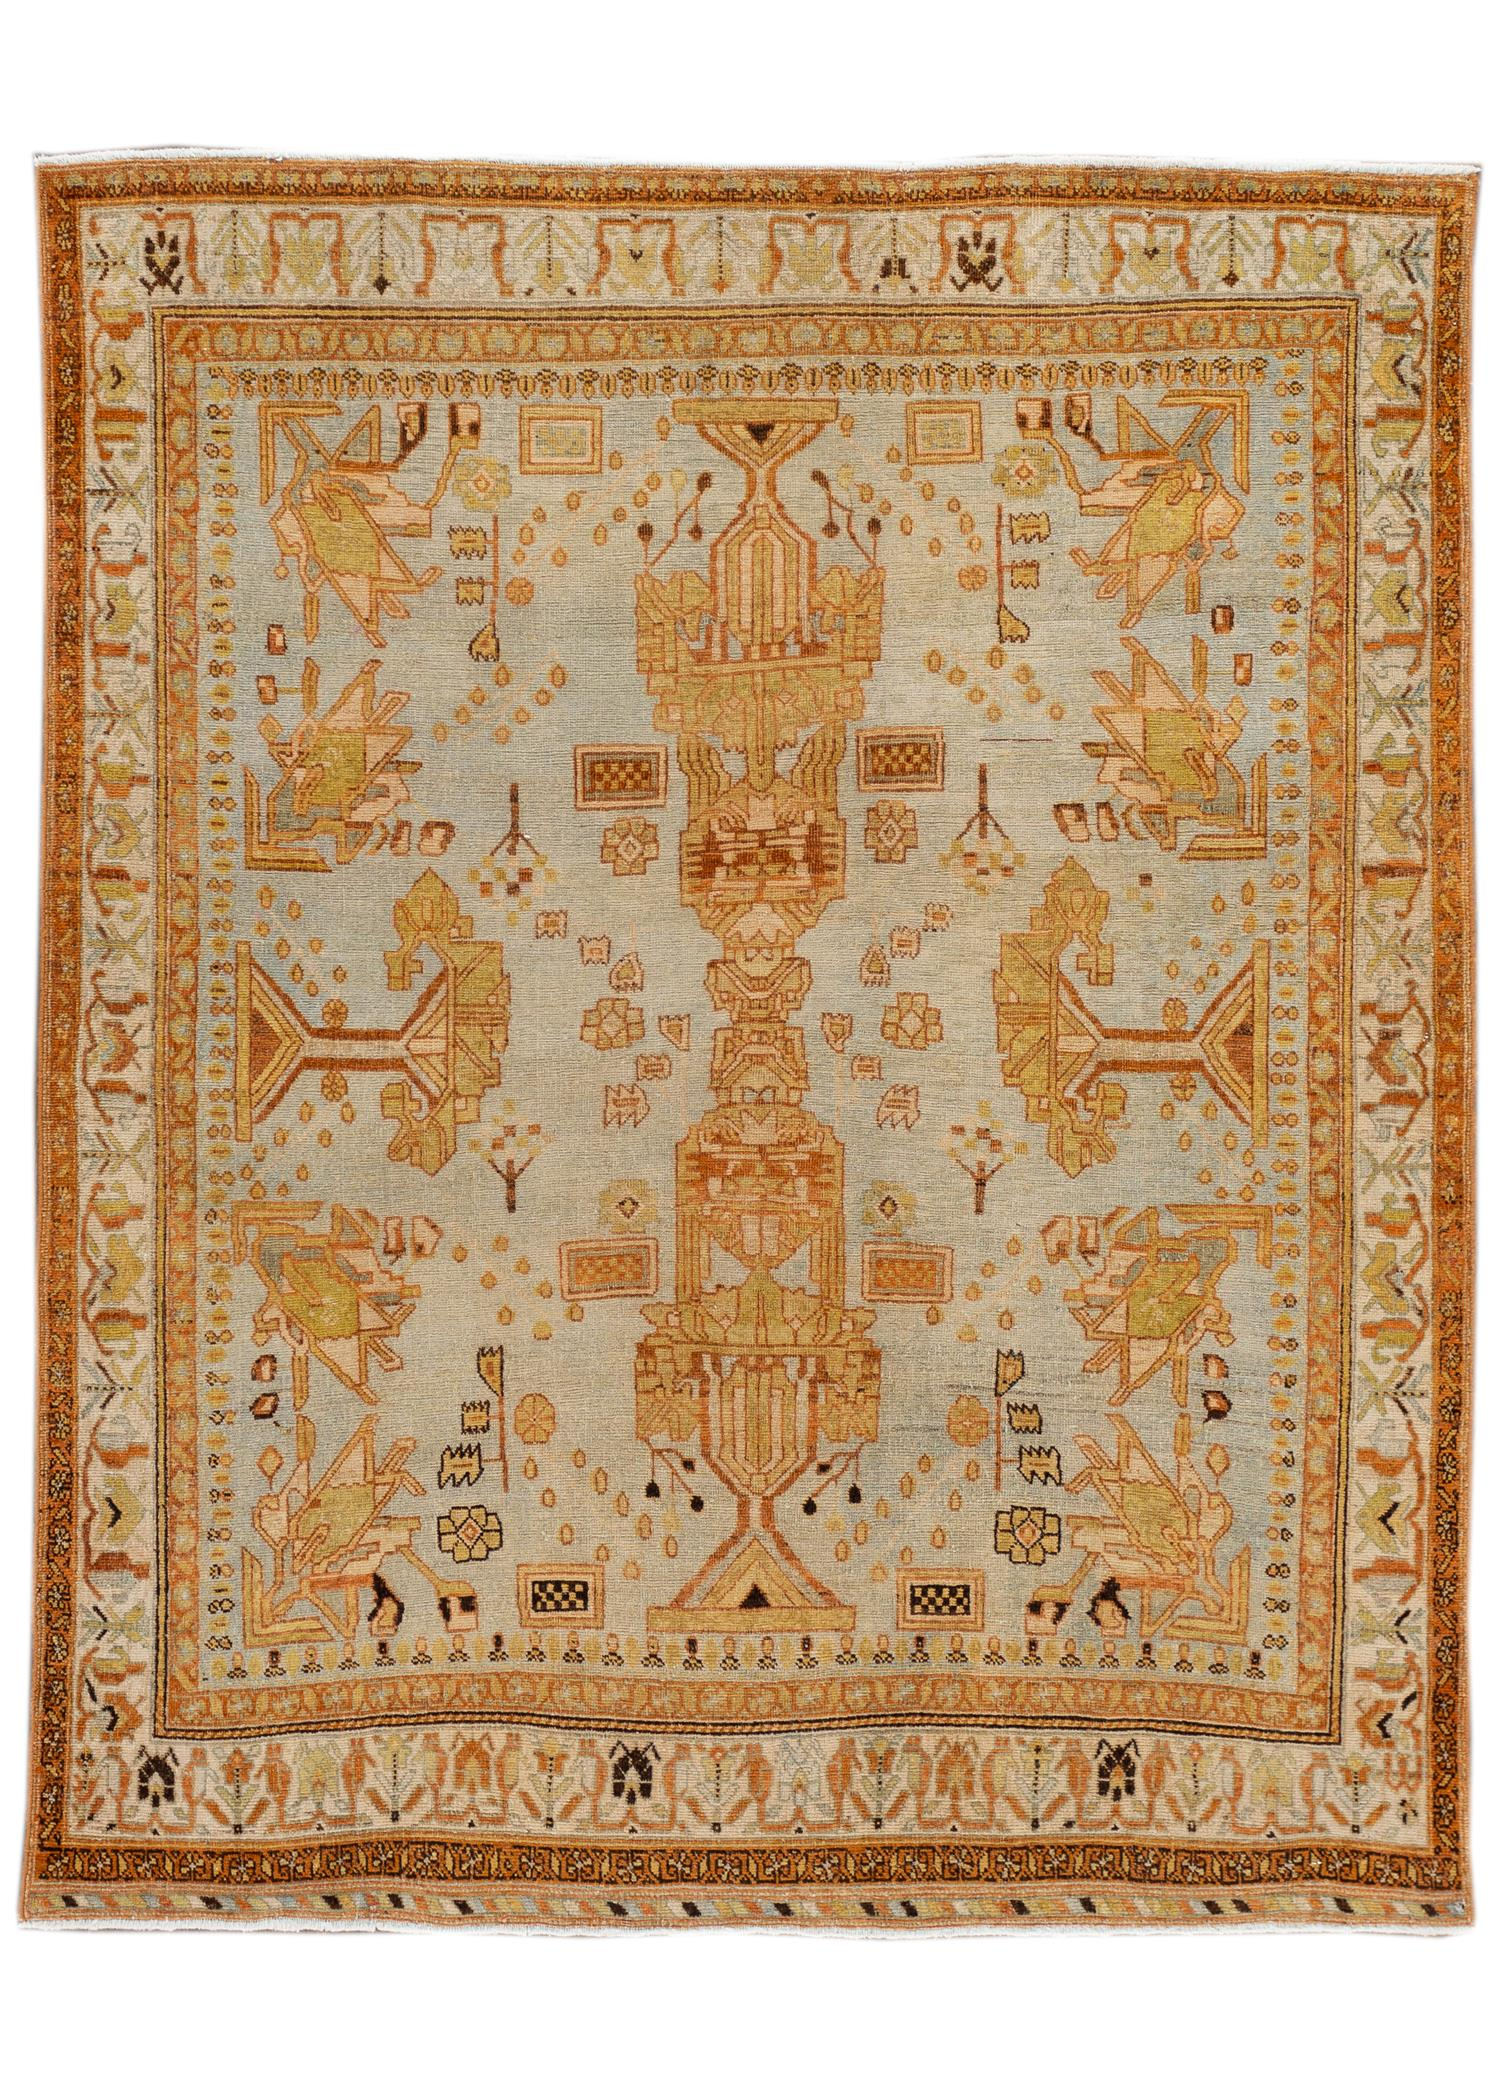 Antique Afshar Rug, #10235262, 5X6